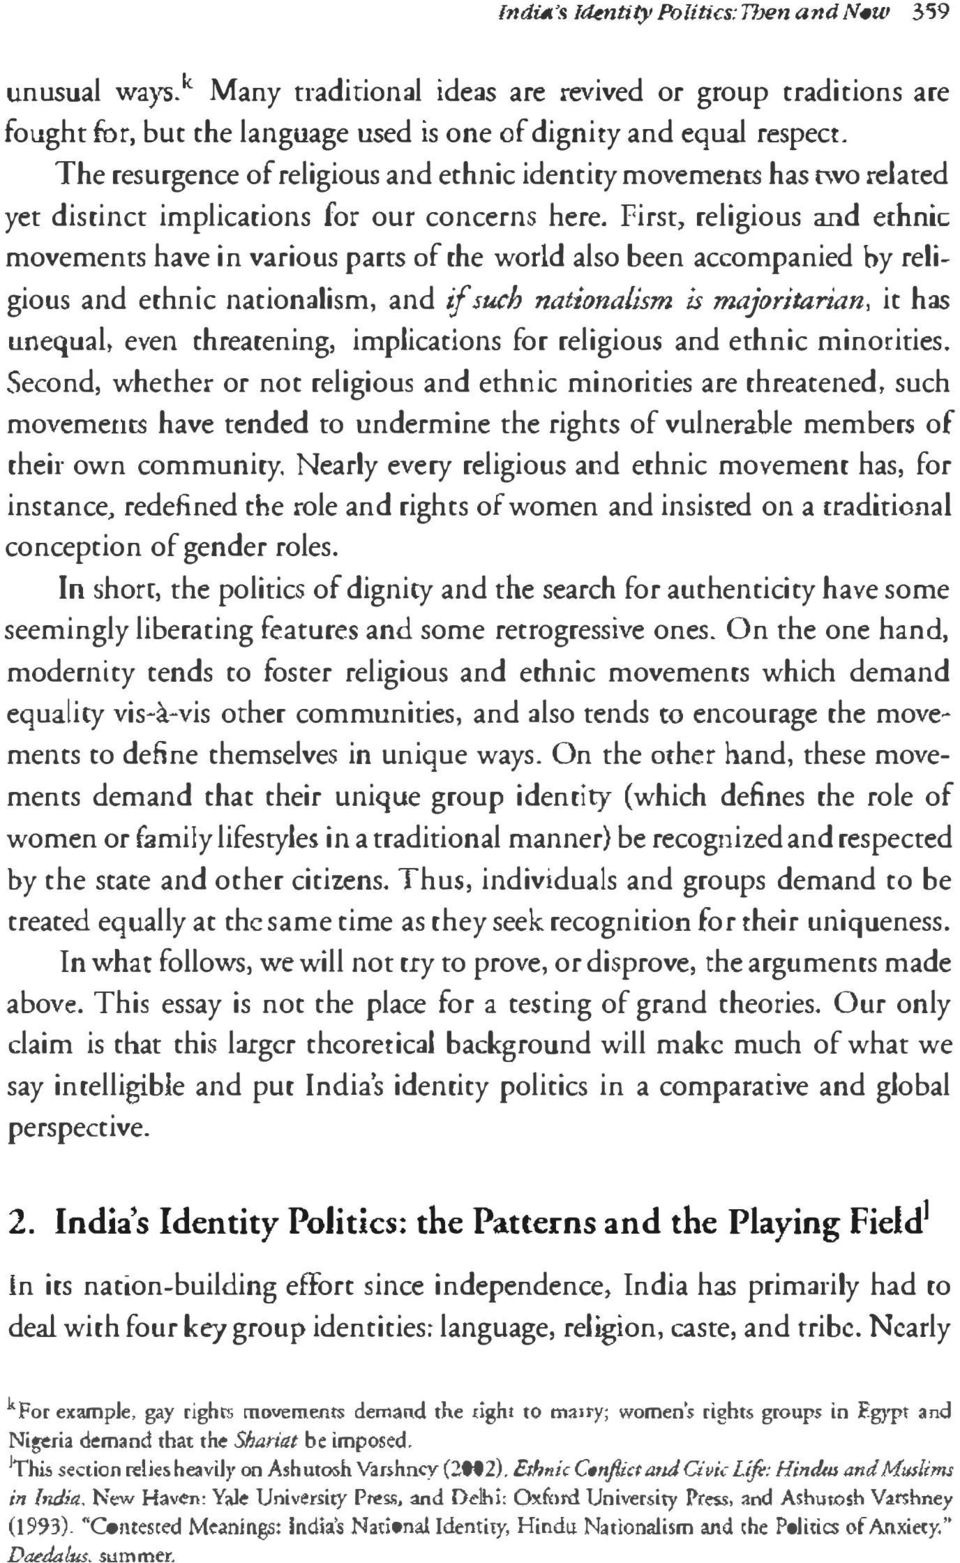 First, religious and ethnic movements have in various parts of the world also been accompanied by religious and ethnic nationalism, and if such nationalism is majoritarian, it has unequal, even